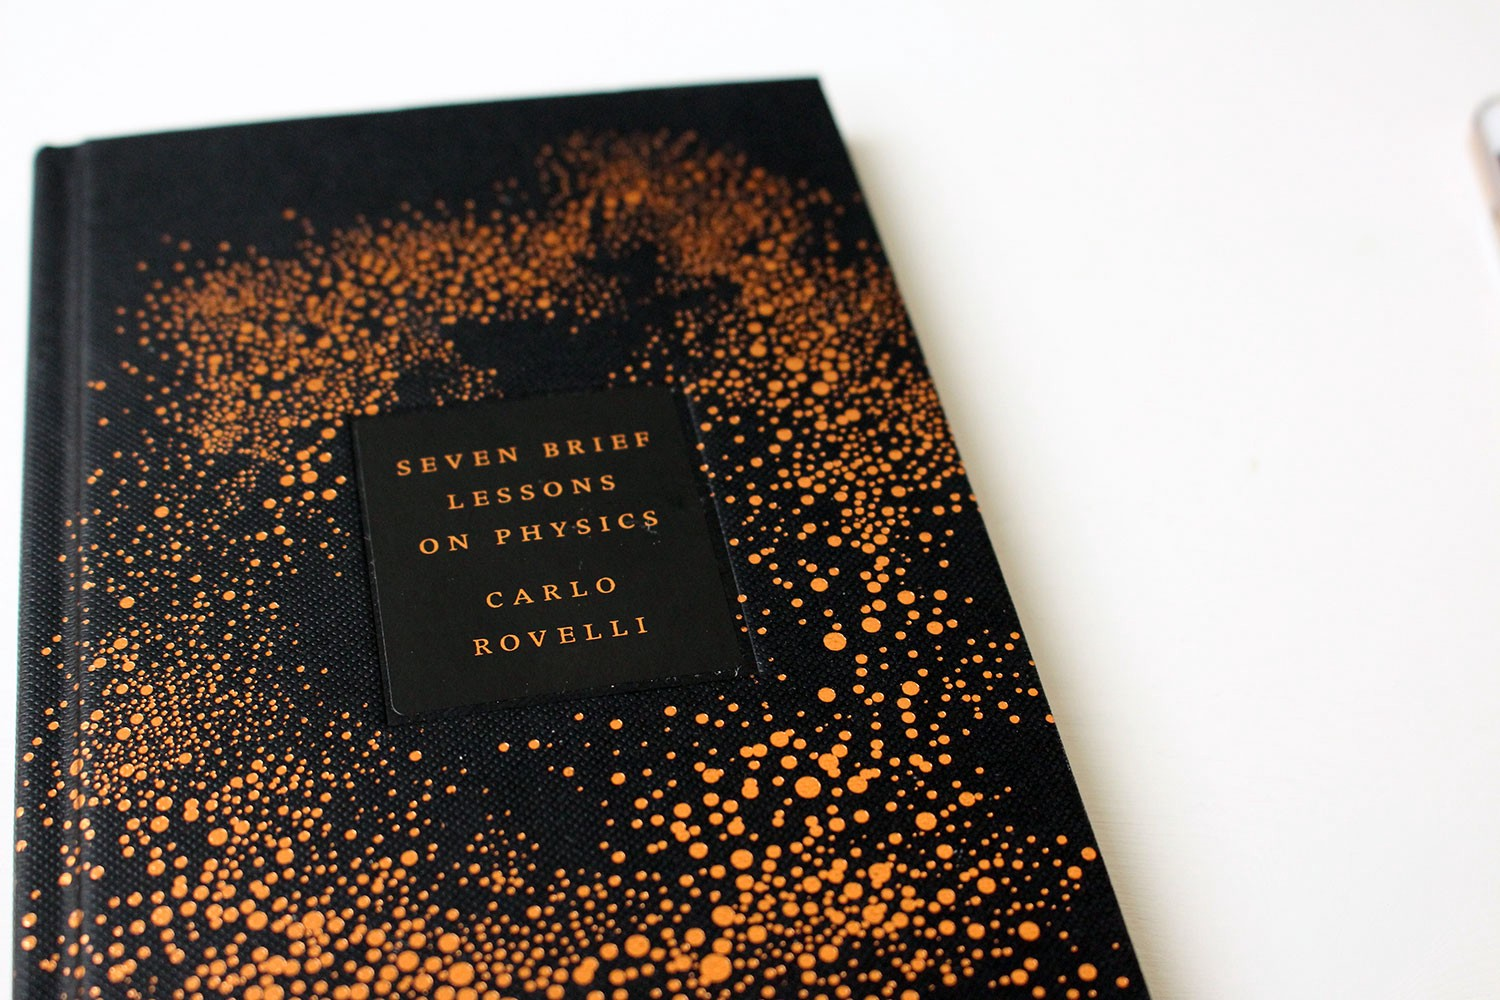 If you want to discover the basics on physics, this is the book for you!  Italian physicist Carlo Rovelli describes in seven brief and very easy  lessons the ...